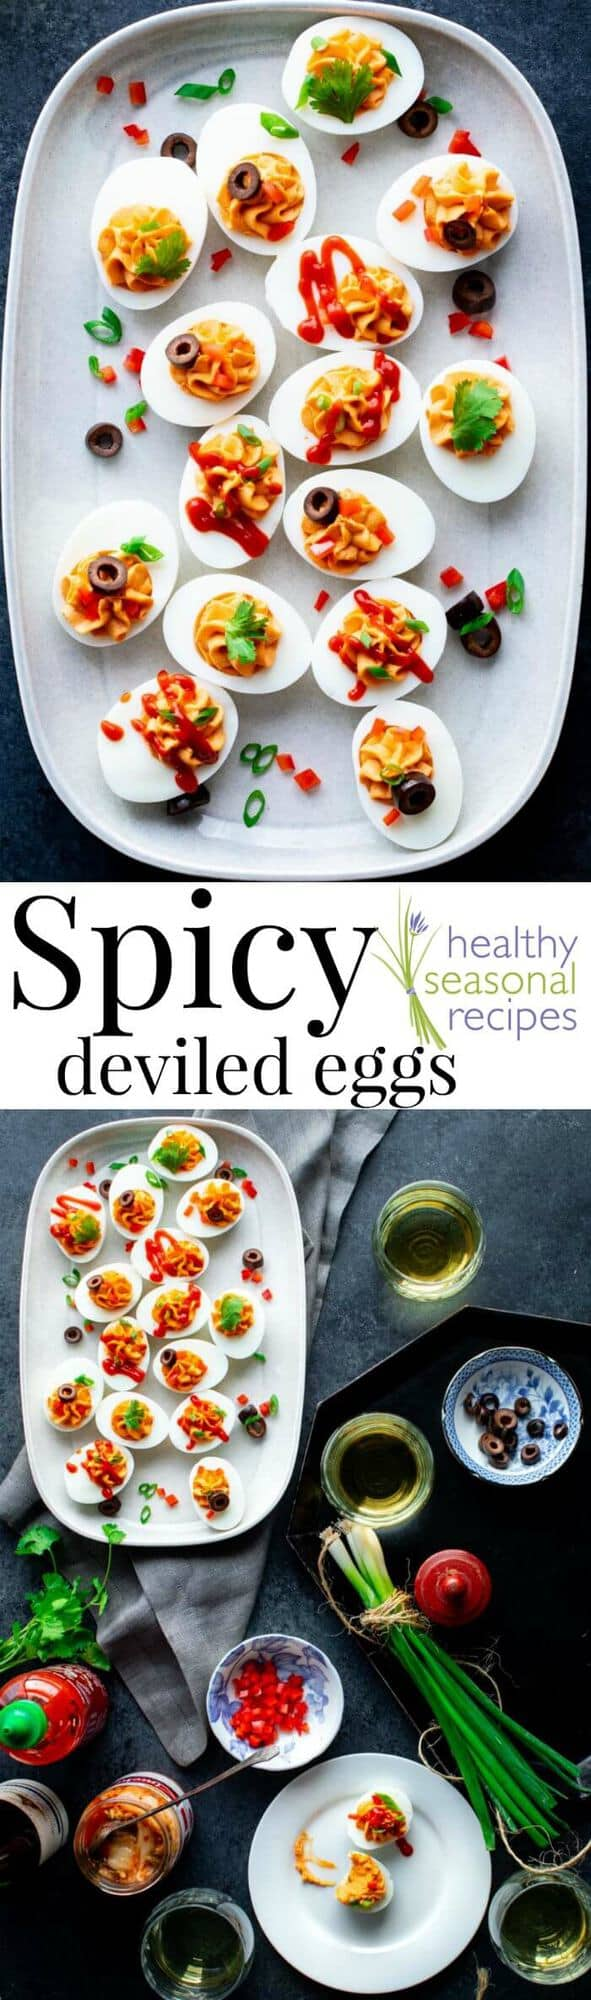 Spicy deviled Eggs with Sriracha. Top them with assorted toppings to make an EASY and festive appetizer for your holiday party. Only 45 calories each and 0 grams carbs. #christmas #easter #newyearseve #thanksgiving #fourthofjuly #deviledeggs #spicy #healthy #greekyogurt #keto #lowcarb #appetizer #glutenfree #grainfree #wheatfree #primal #lowcalorie